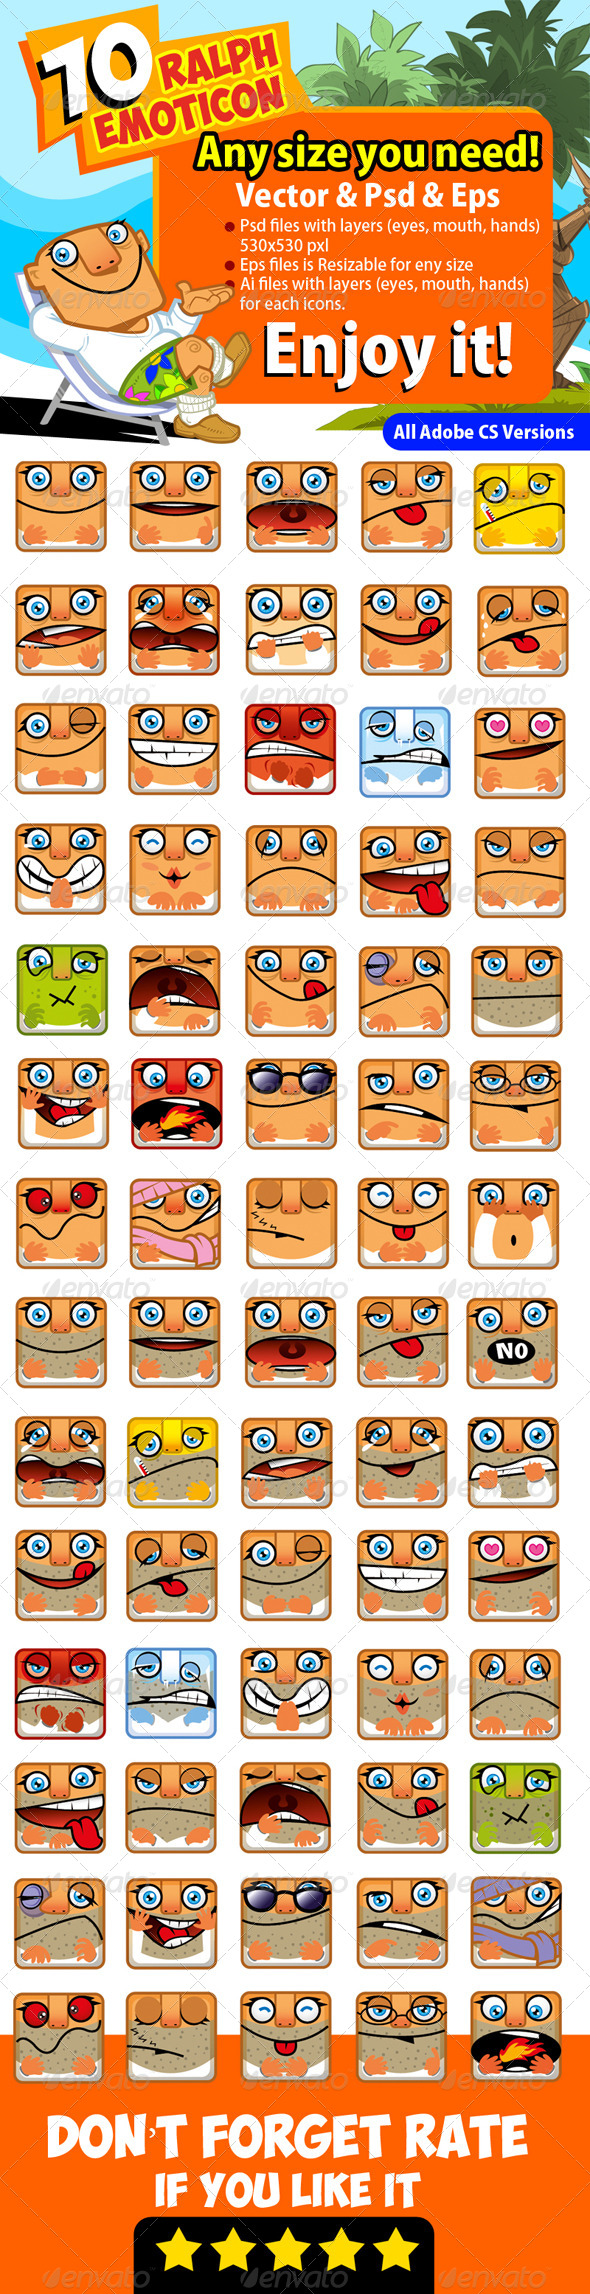 GraphicRiver 70 Ralph Emoticon Icons 4745605